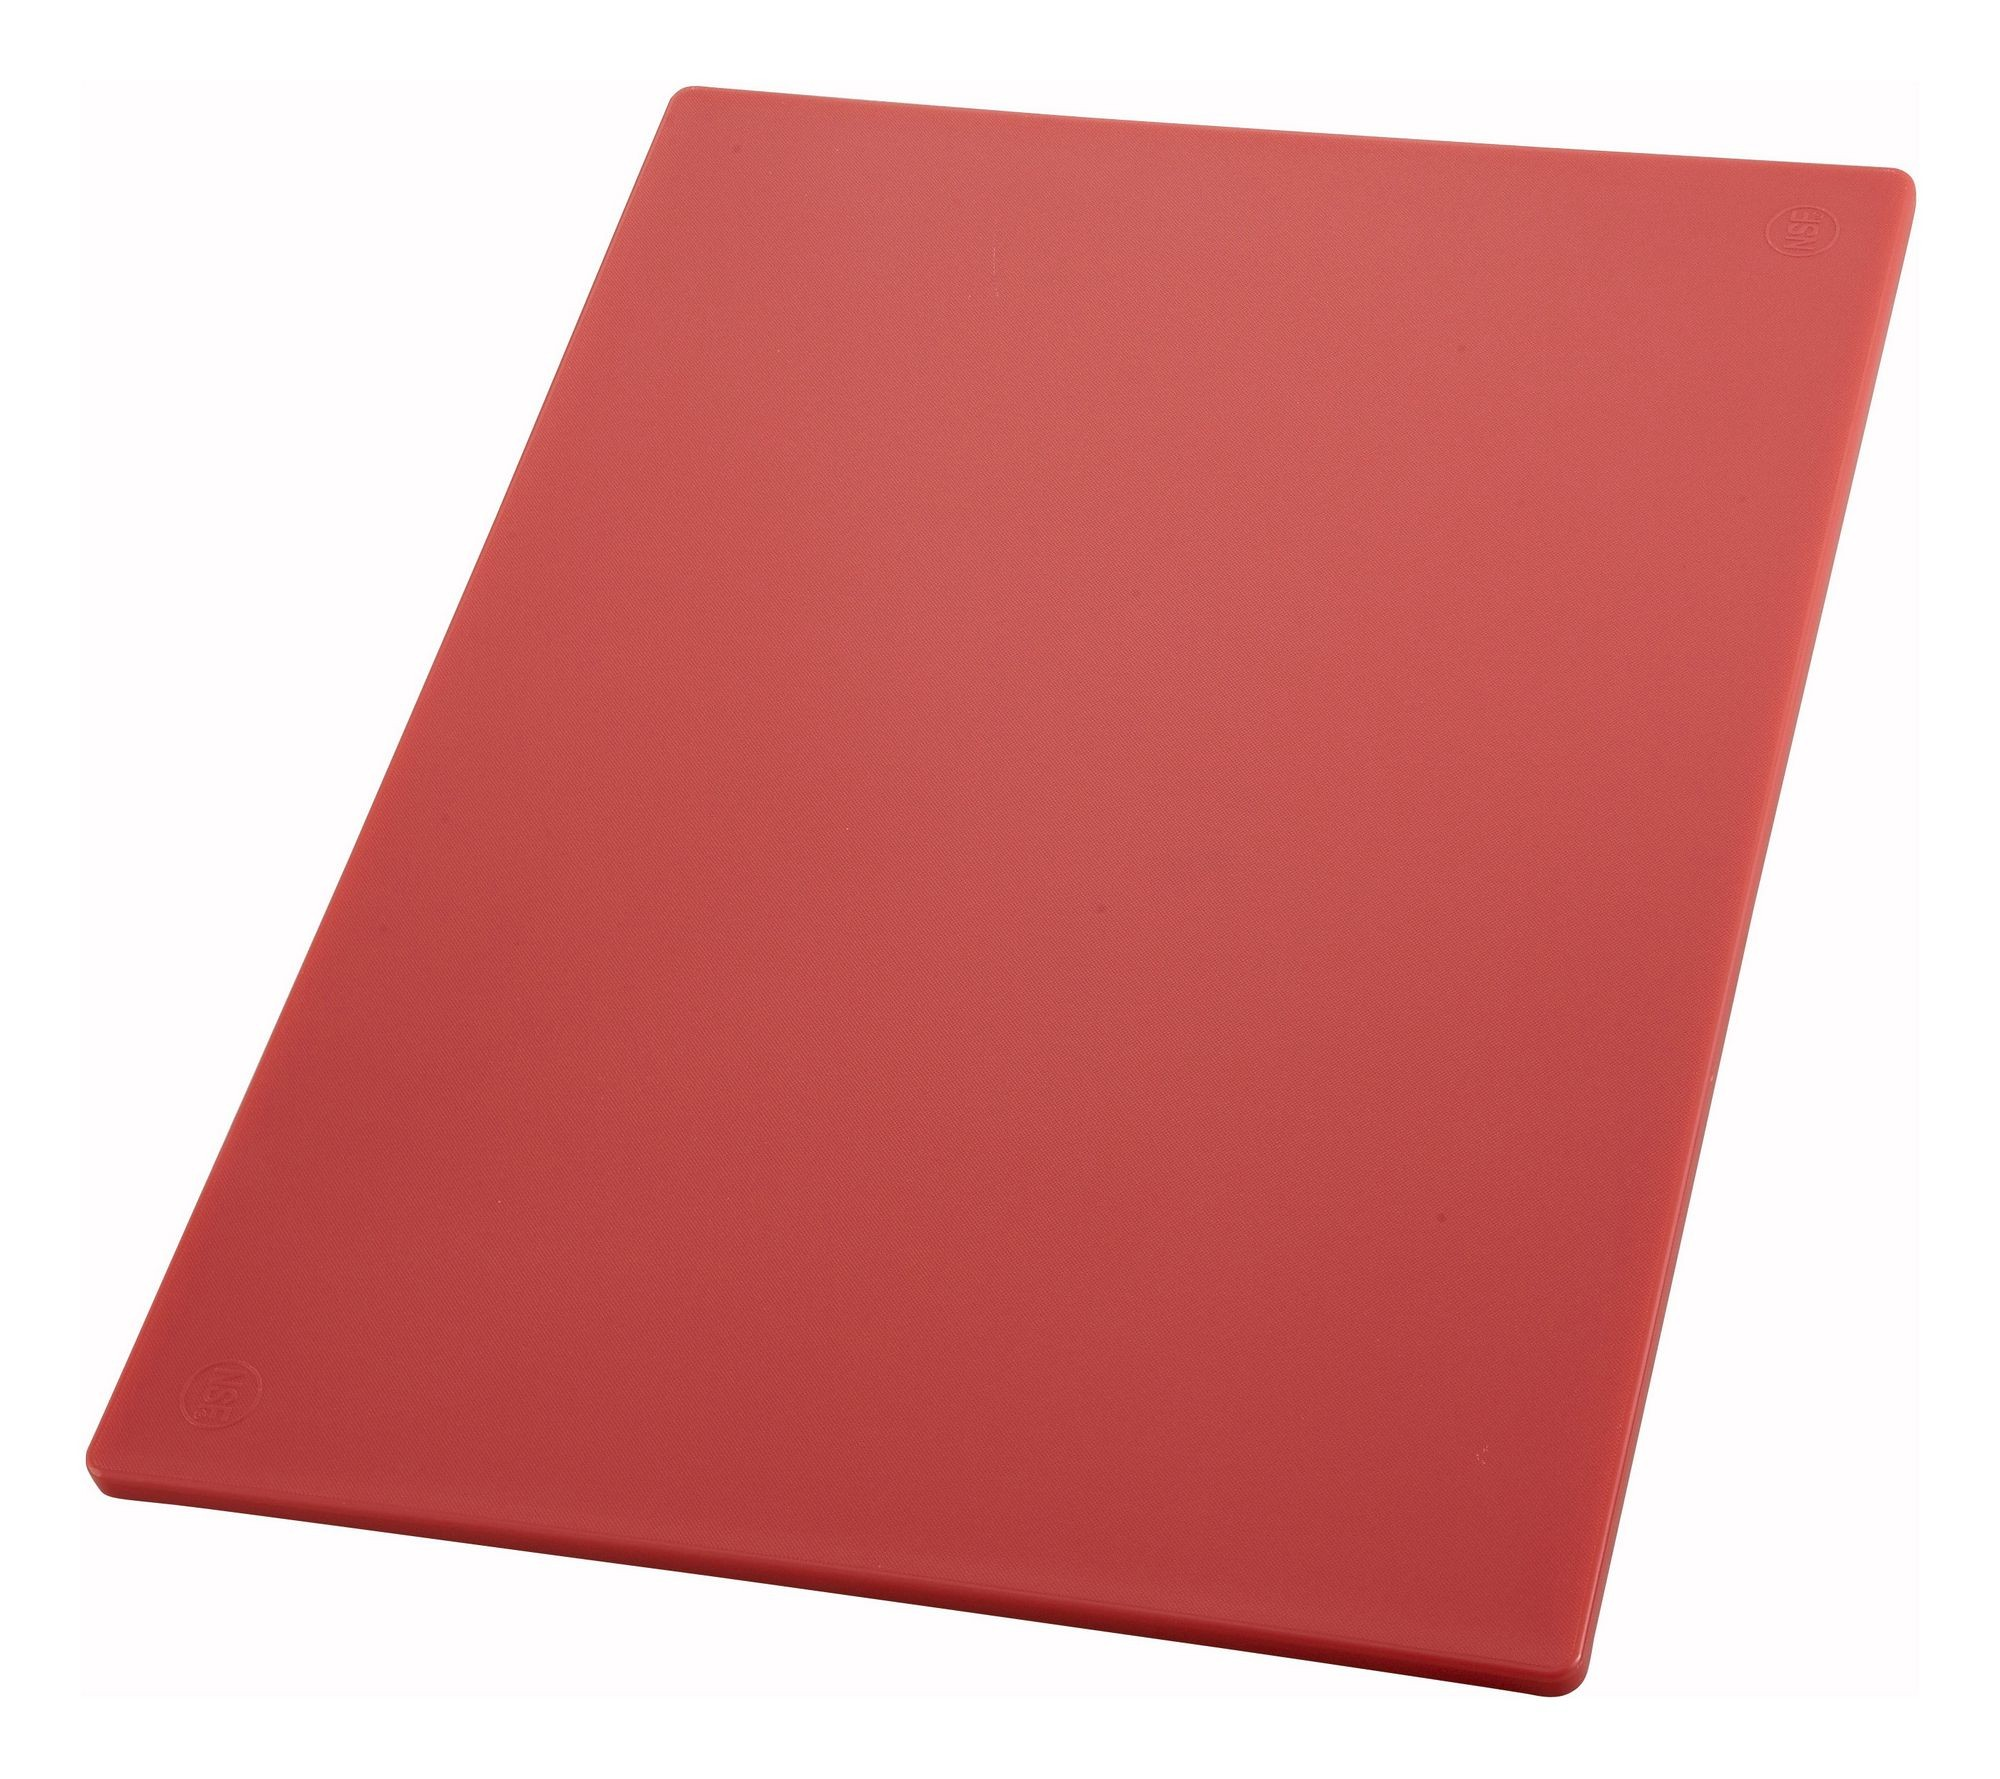 15X20X1/2 Cutting Board Red (Raw Meats Board)